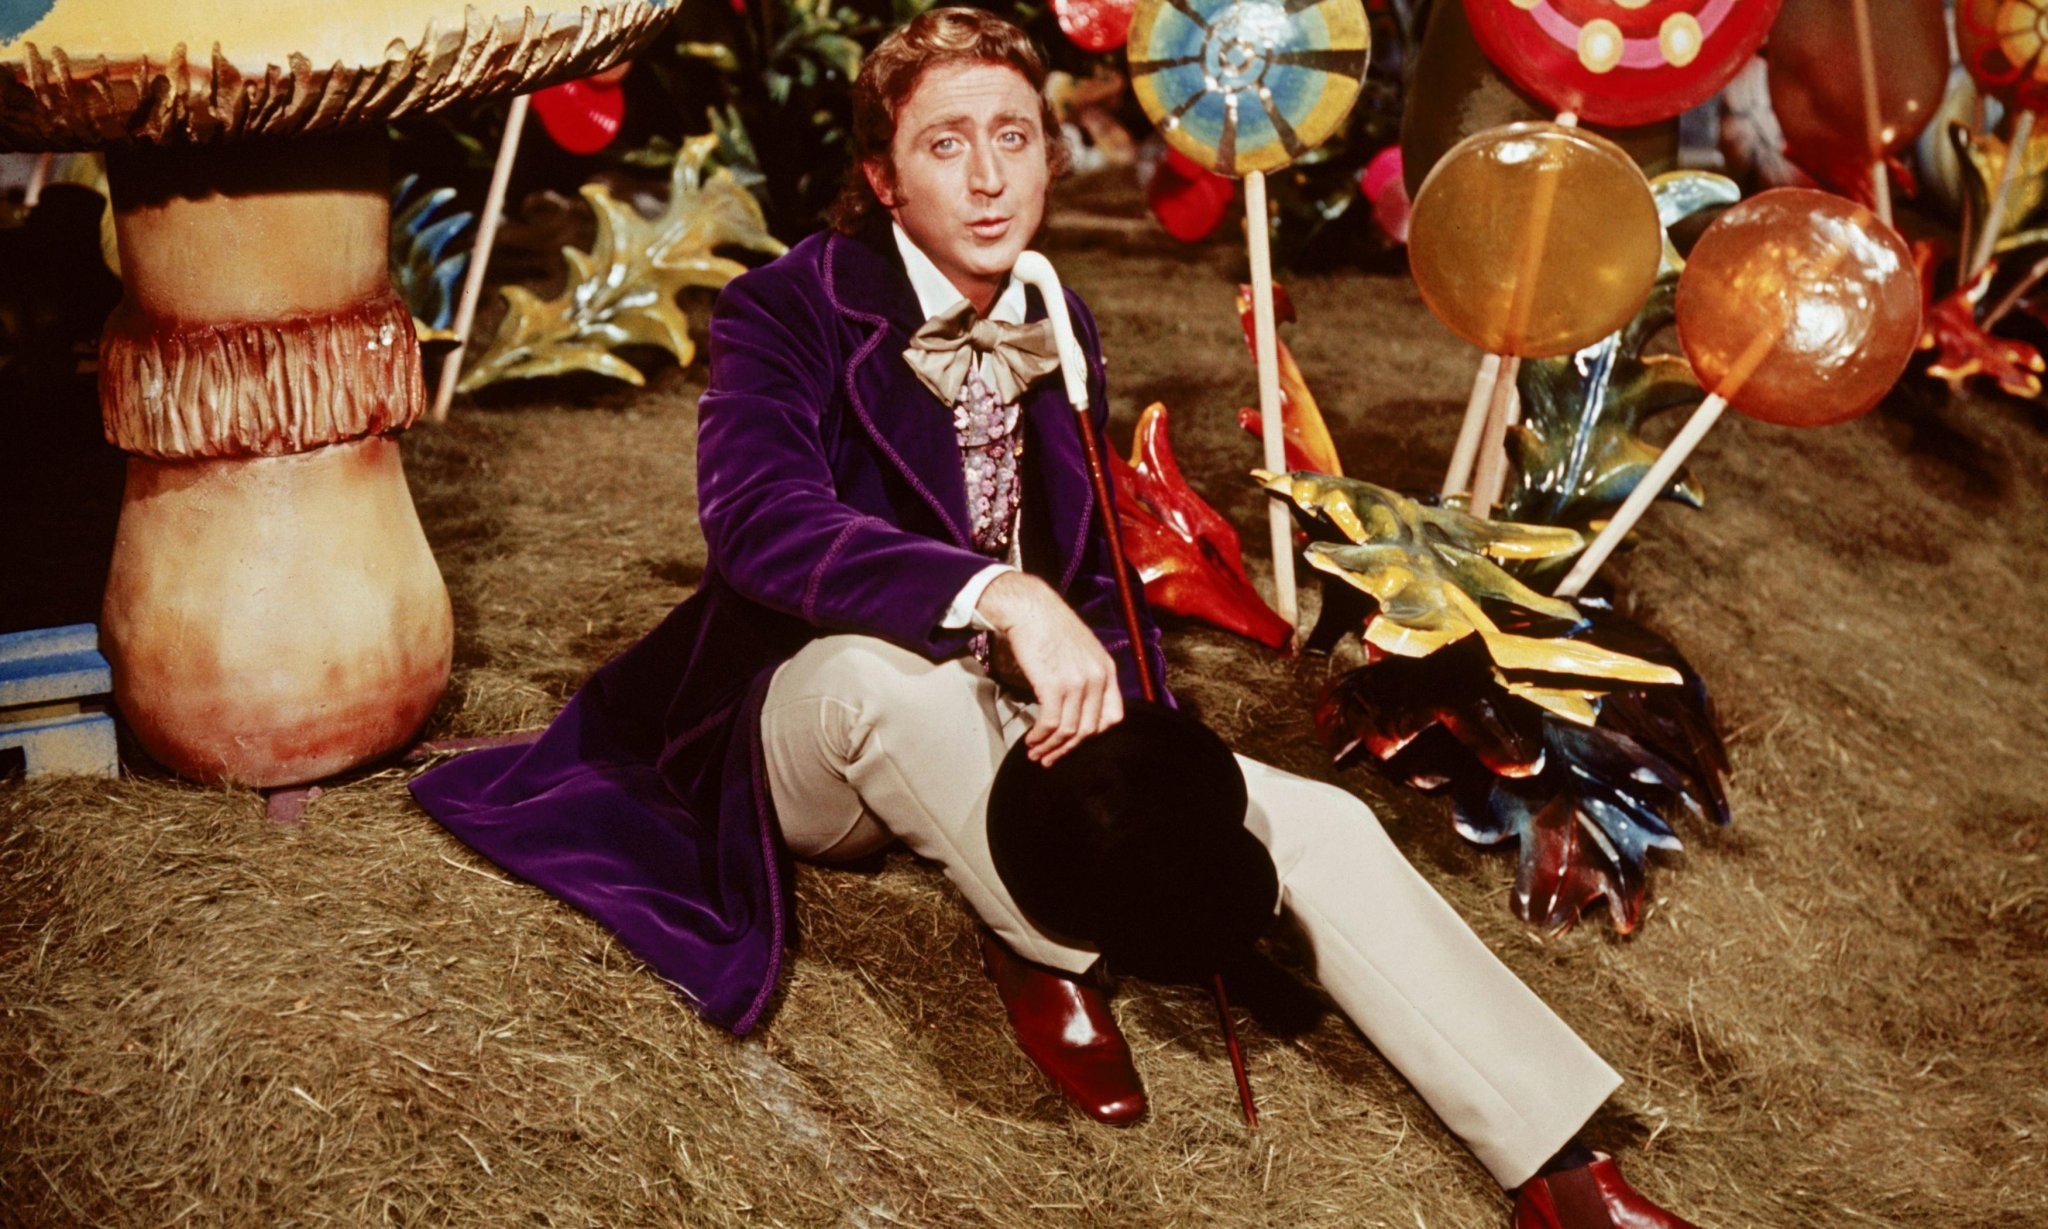 'Willy Wonka & the Chocolate Factory' at 50